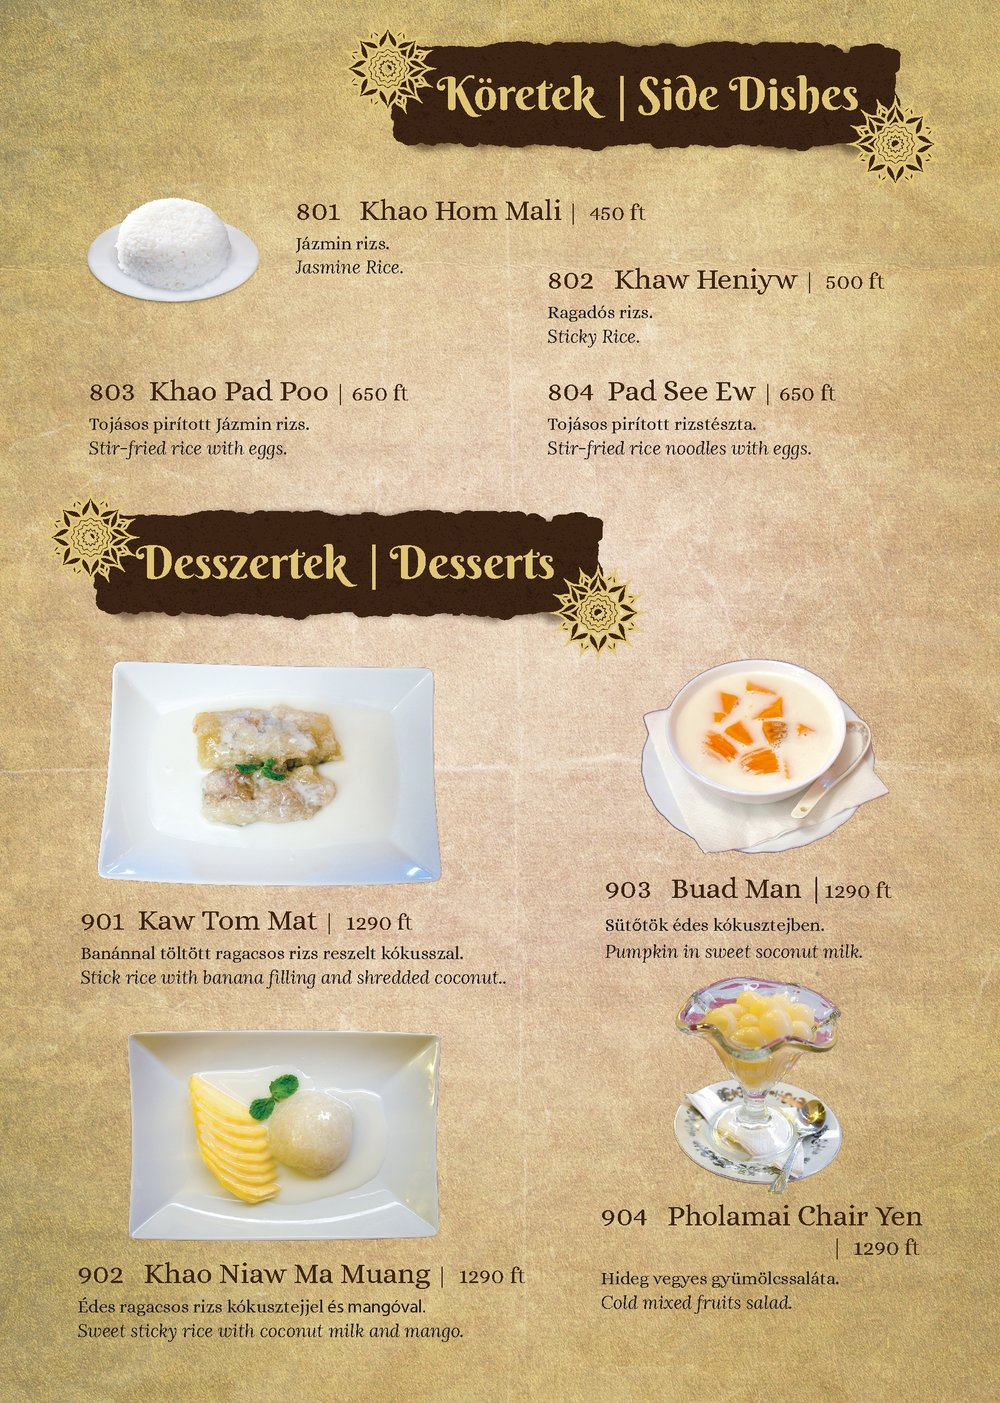 8.Sawasdee_menu_book-Side_dish_&_Dessert.0915.1.jpg